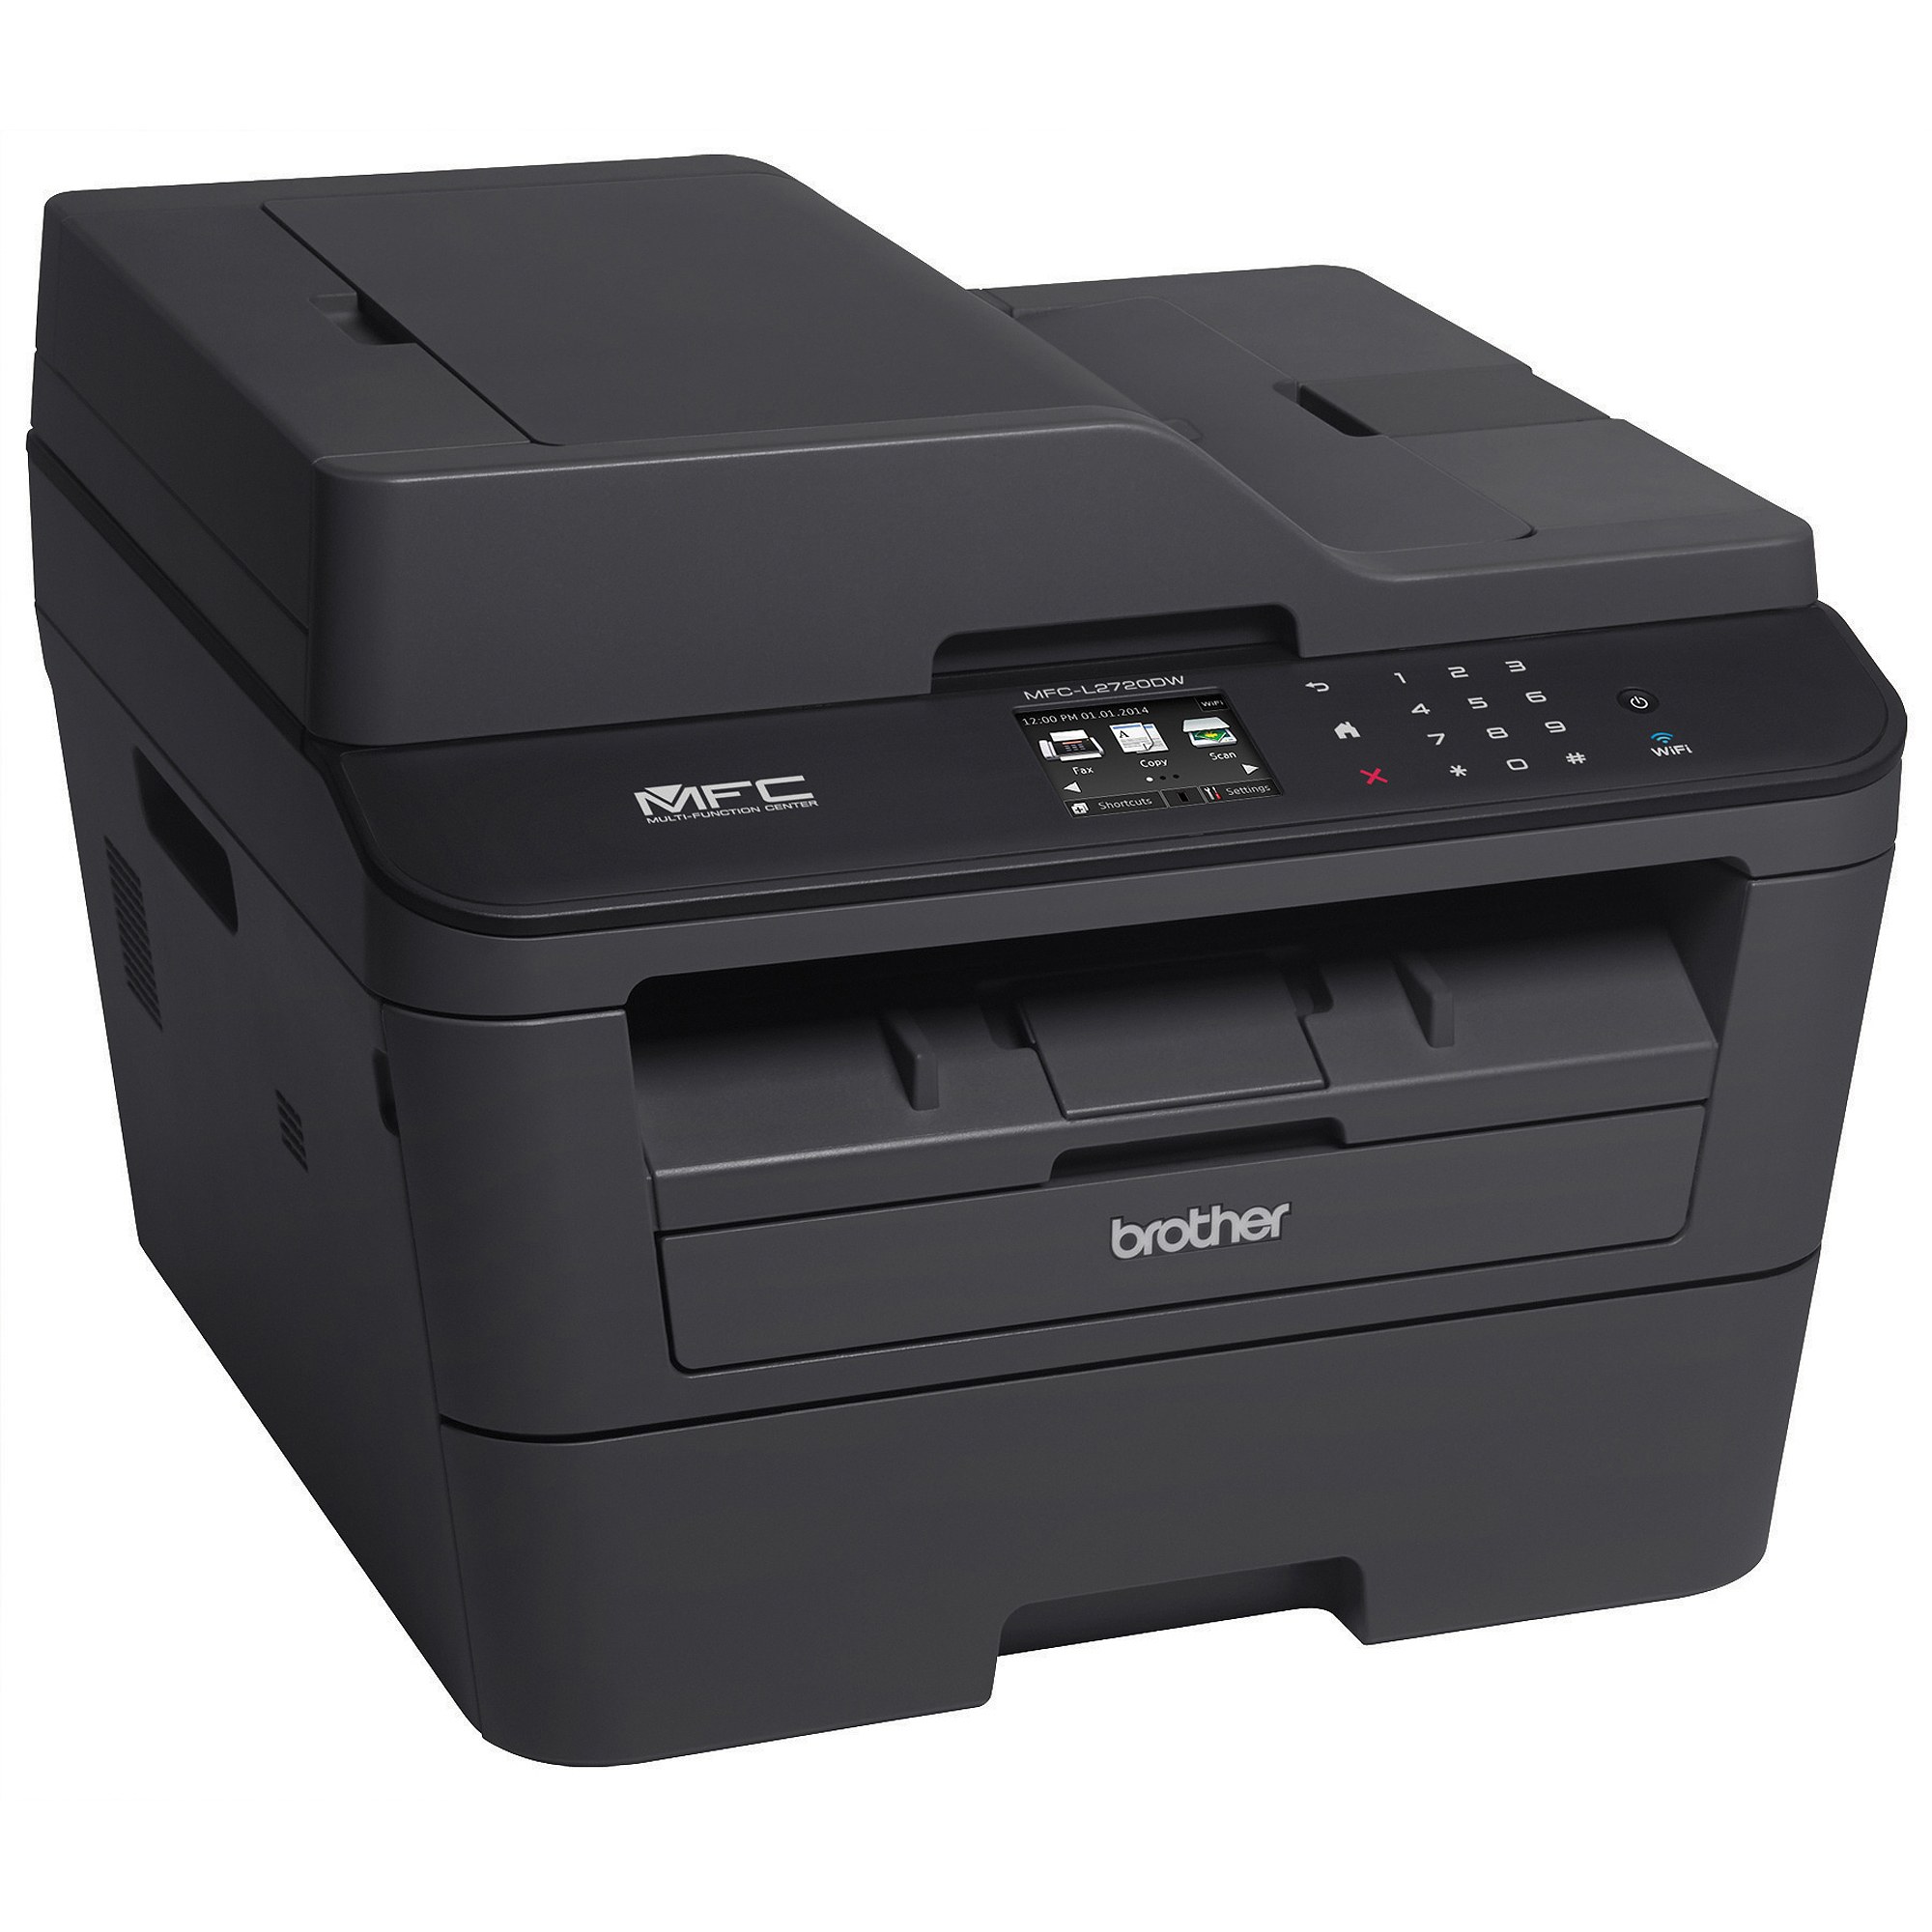 Brother MFC-L2720DW Compact Laser All-in-One Printer/Copier/Scanner/Fax Machine